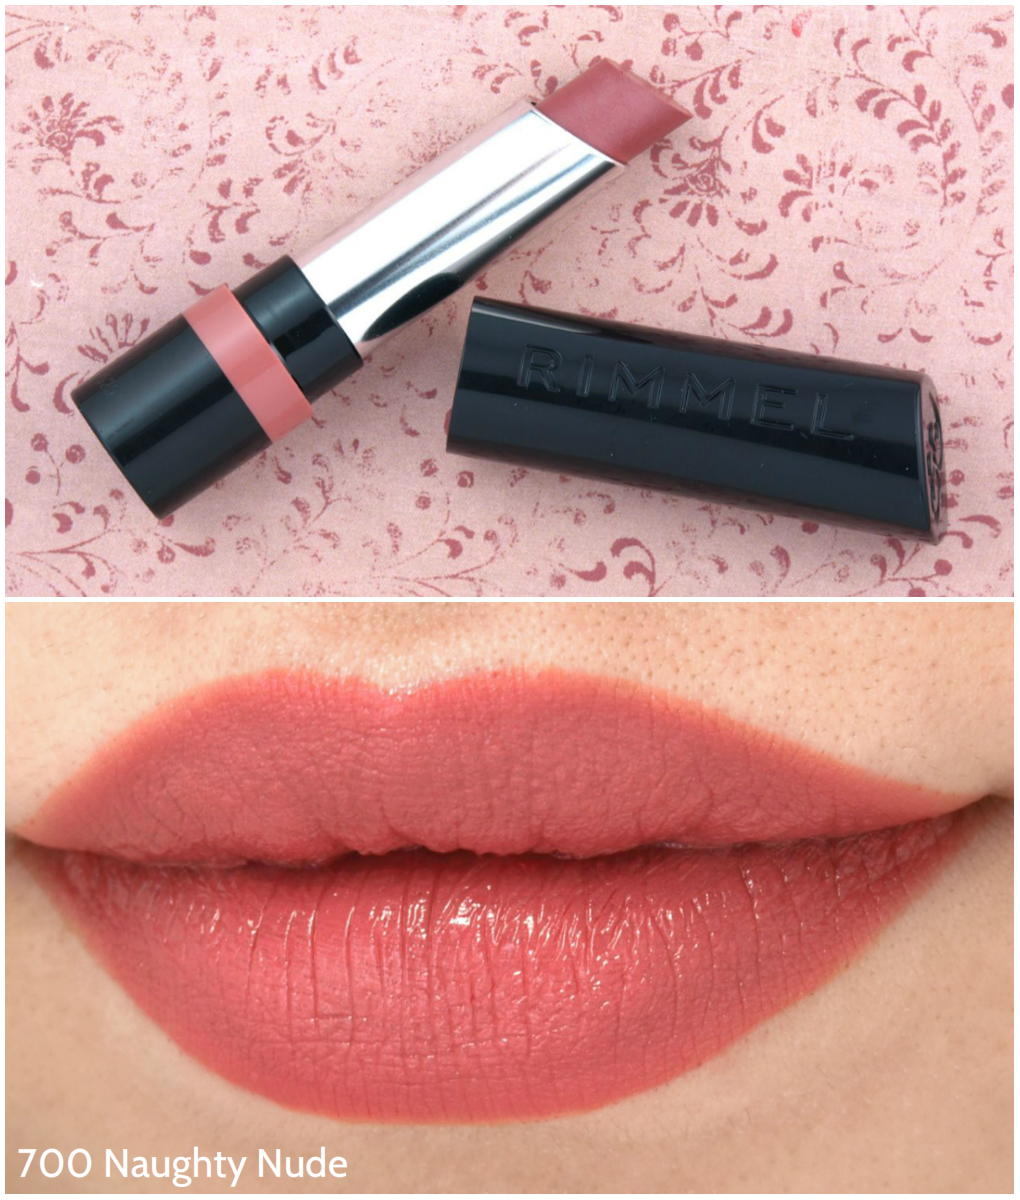 Colour care london lipstick price - Rimmel The Only 1 Lipstick In 700 Naughty Nude